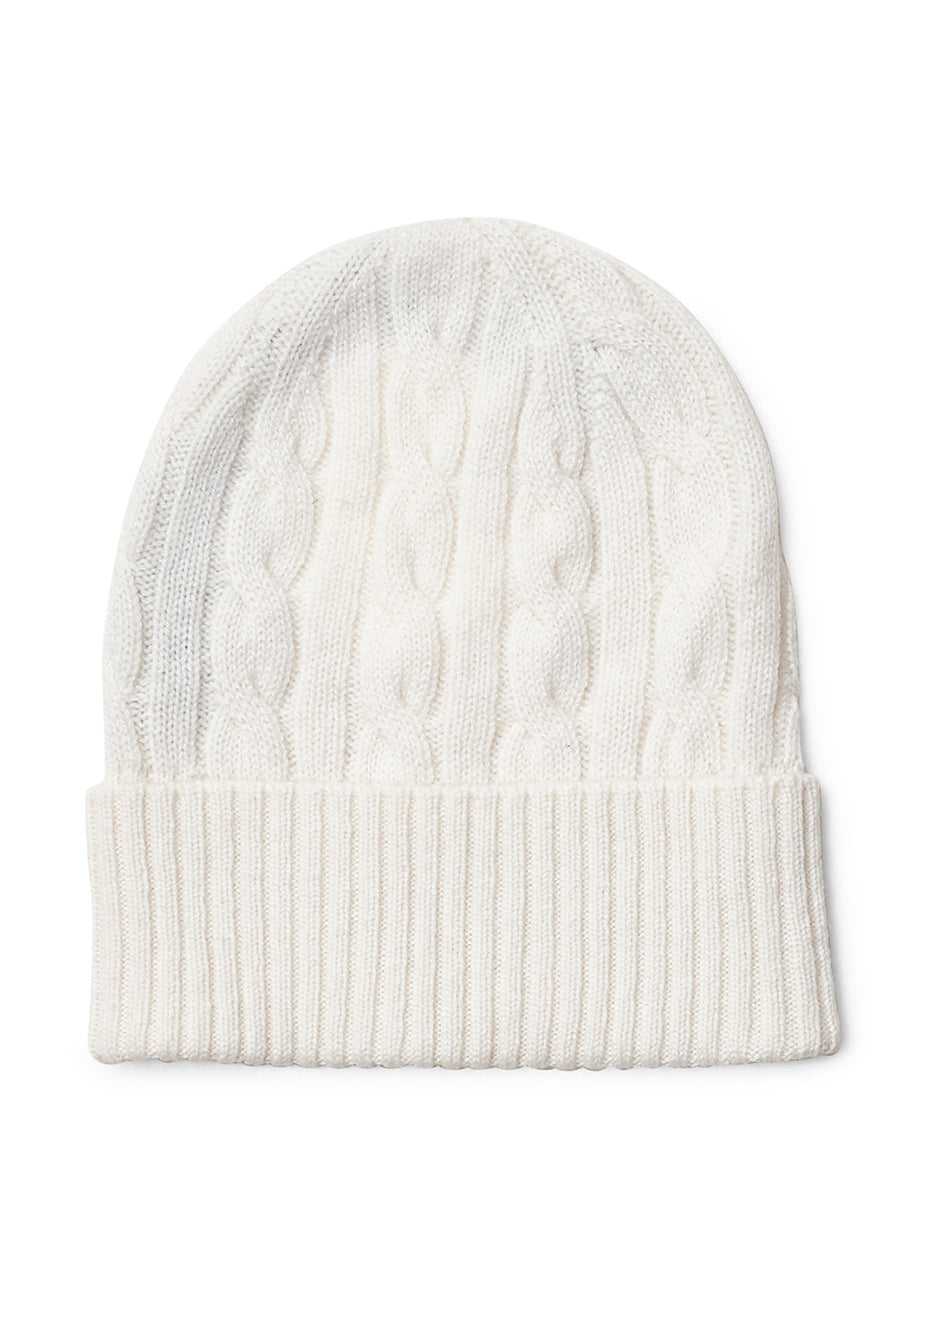 White Cashmere Hat